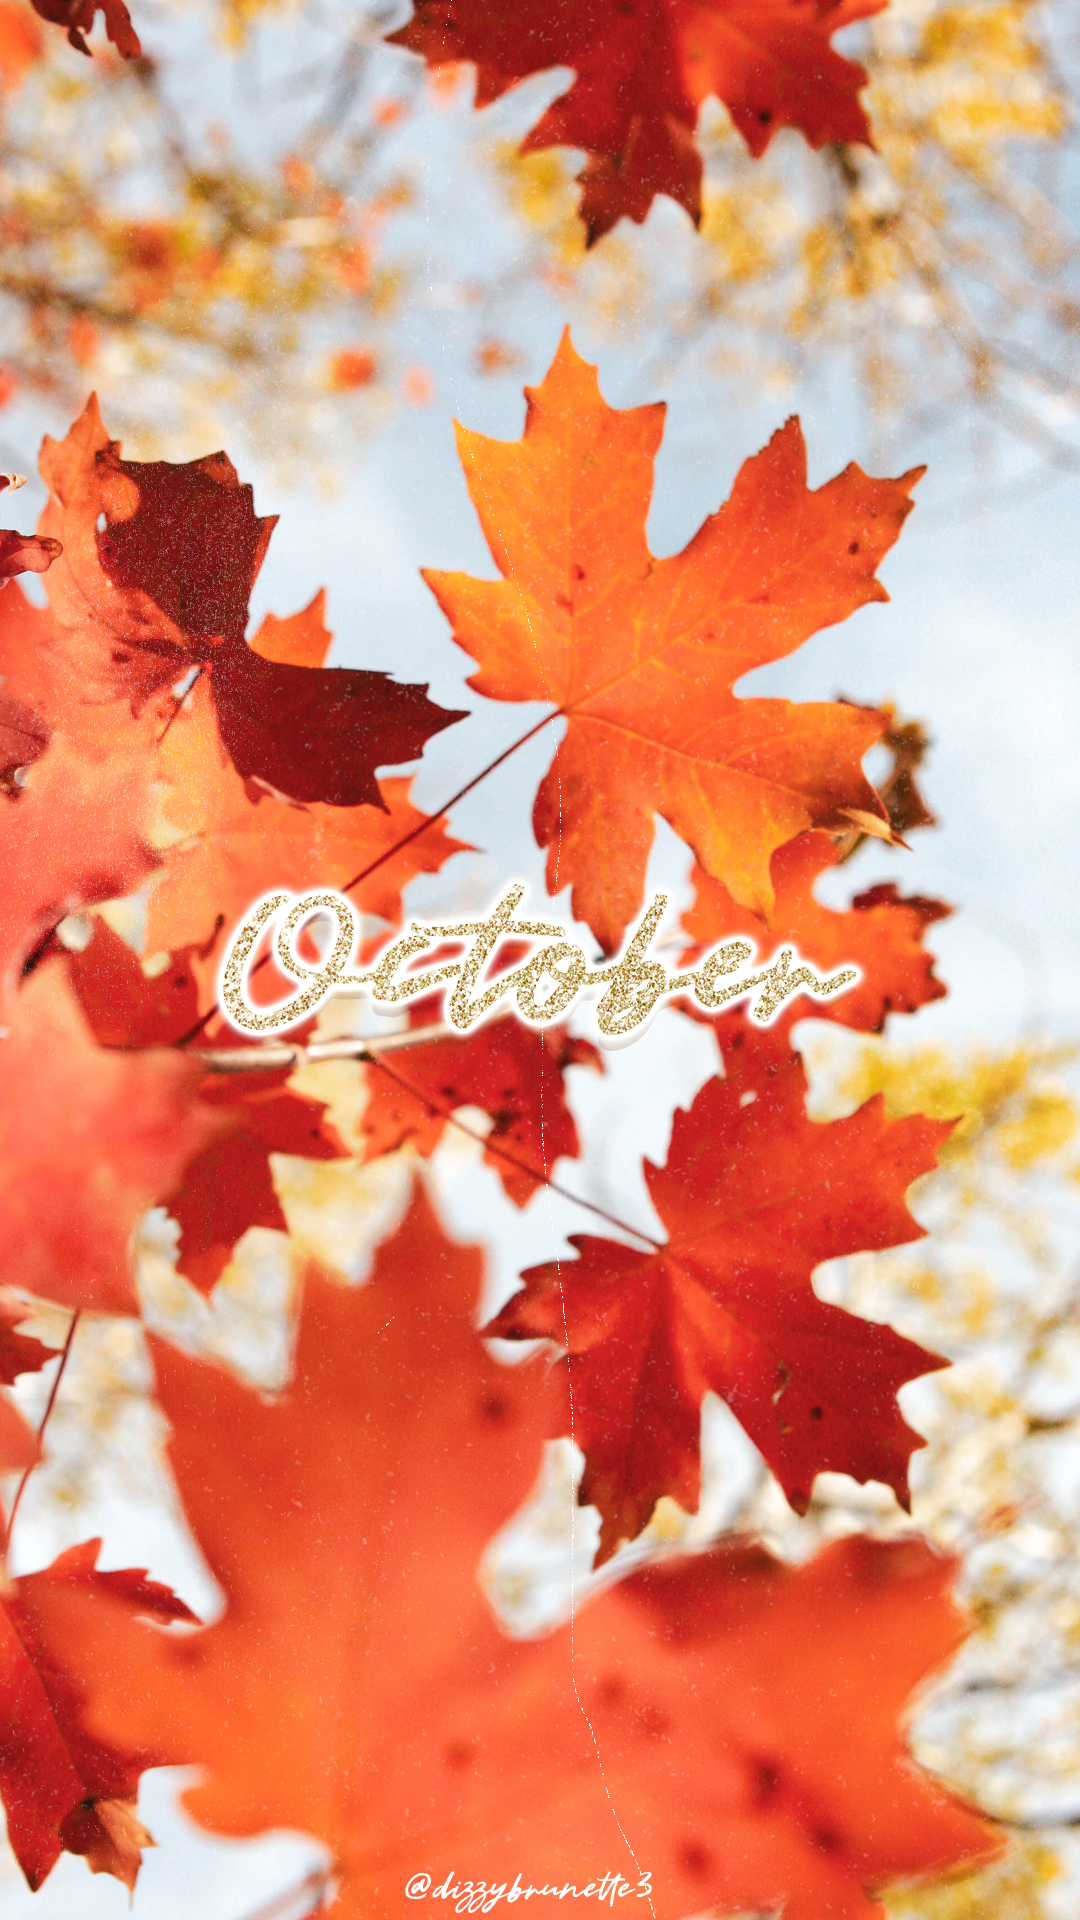 40 Free Amazing Fall Wallpaper Backgrounds For Iphone Fall Wallpaper October Wallpaper Iphone Wallpaper Fall